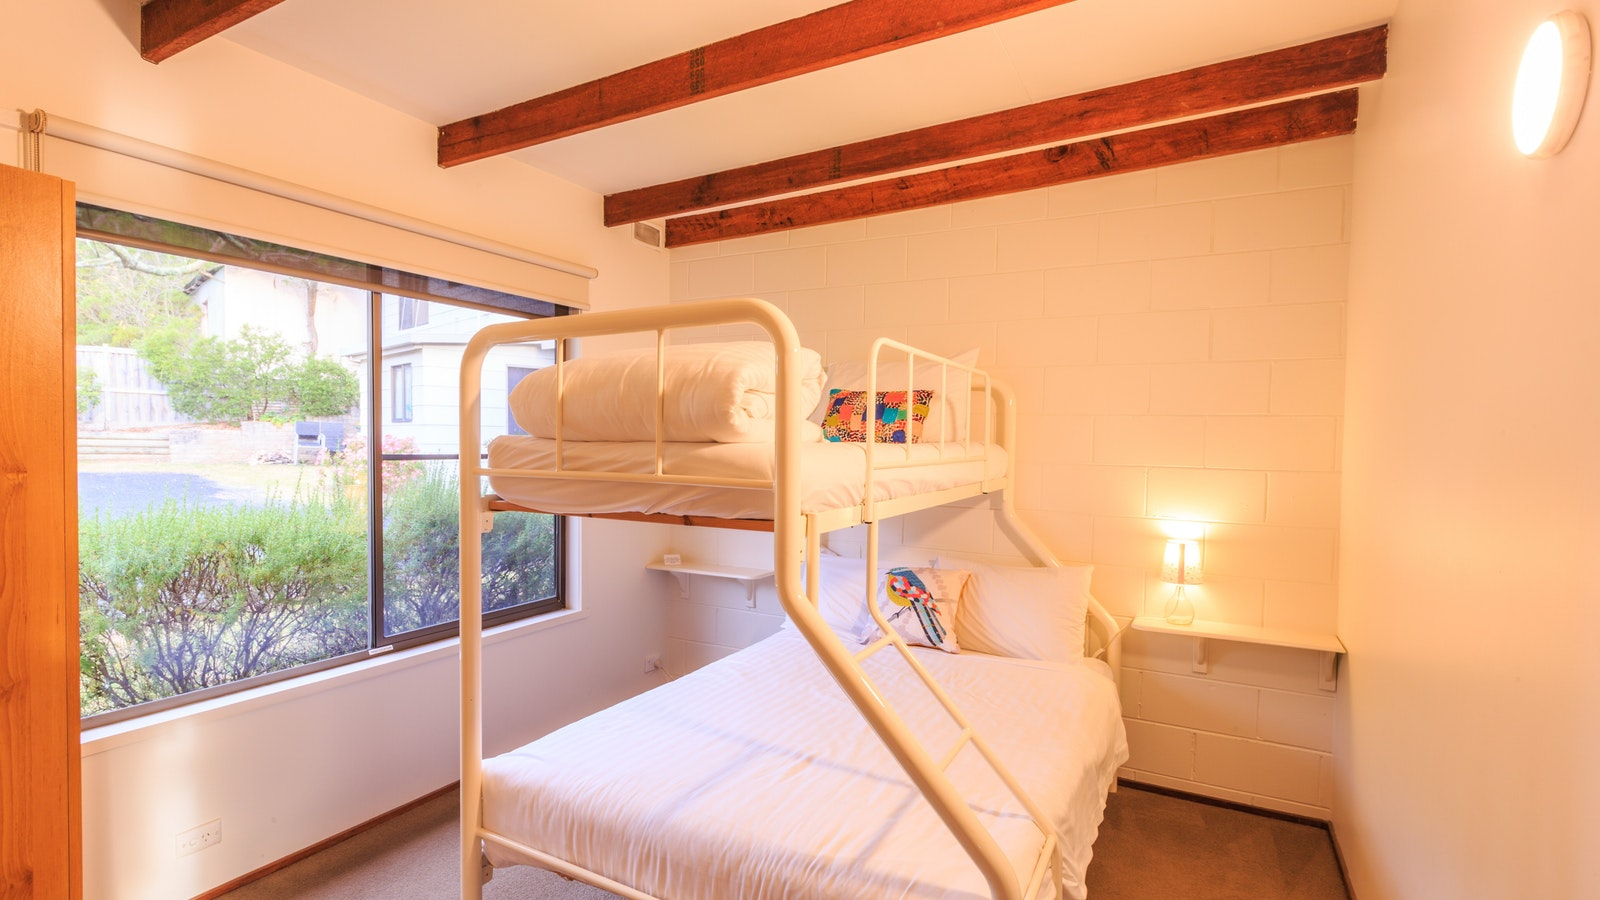 Second bedroom has a tri-bunk with double bed below and single above, perfect for families or groups